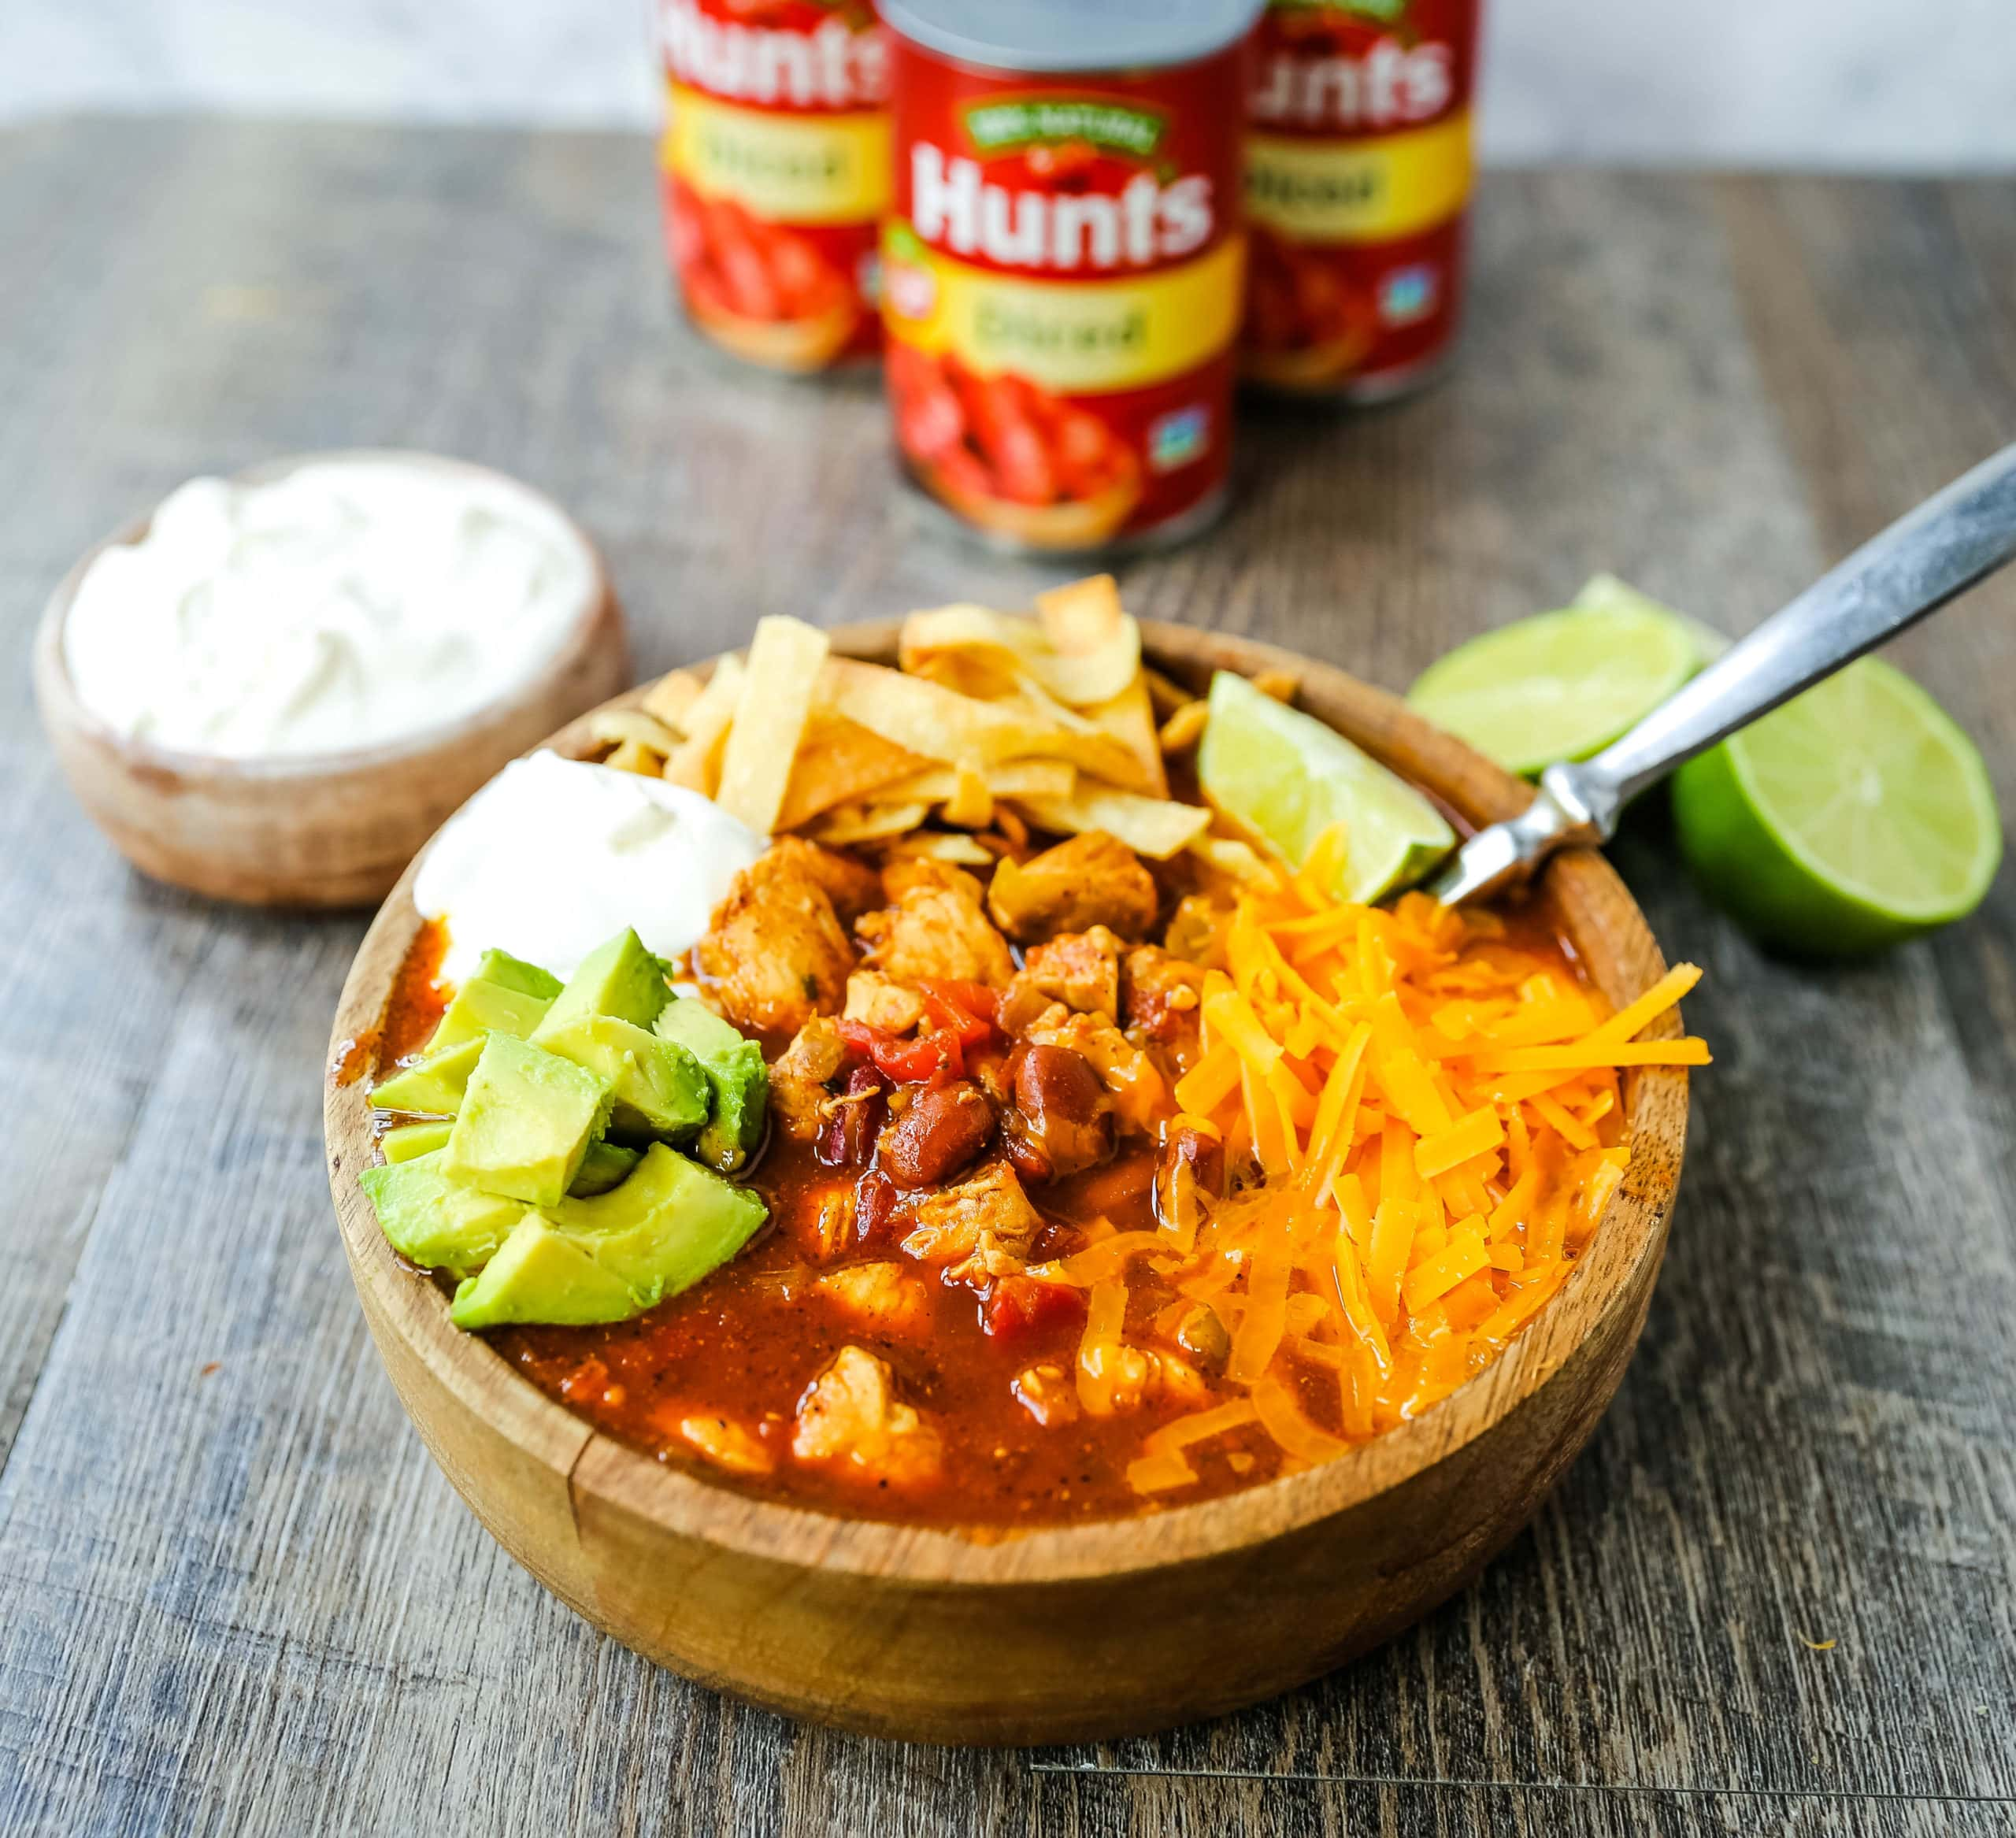 Chicken Chili. Traditional, homemade chicken chili with Mexican spices, green chilies, tomatoes, chili beans, and two secret ingredients to put it over the top! www.modernhoney.com #chili #chickenchili